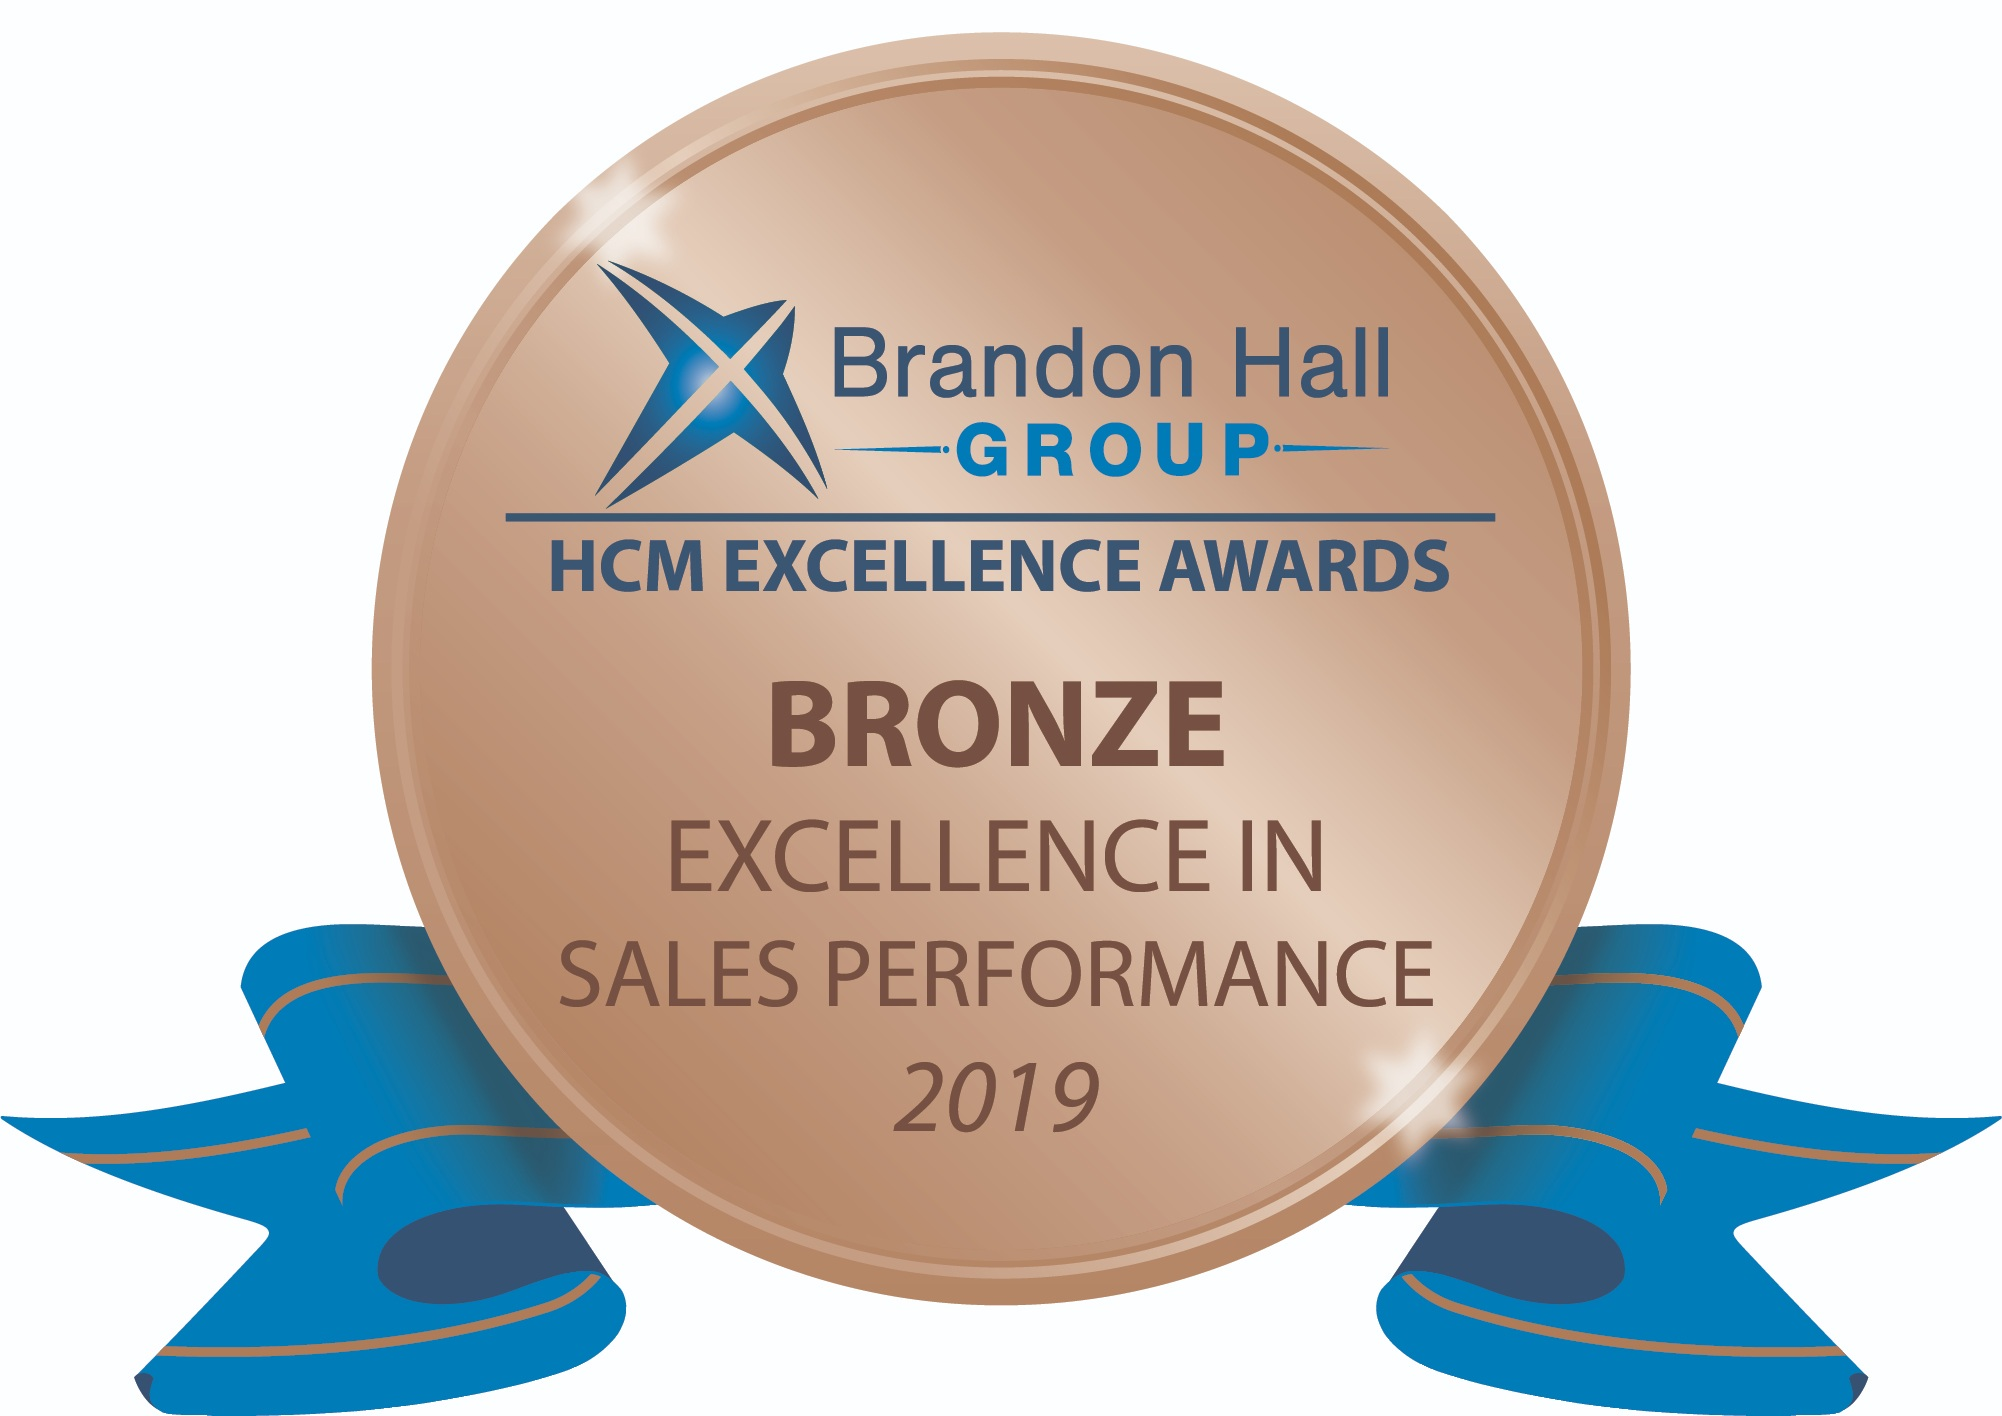 Bronze-SP-Award-2019-01.jpg